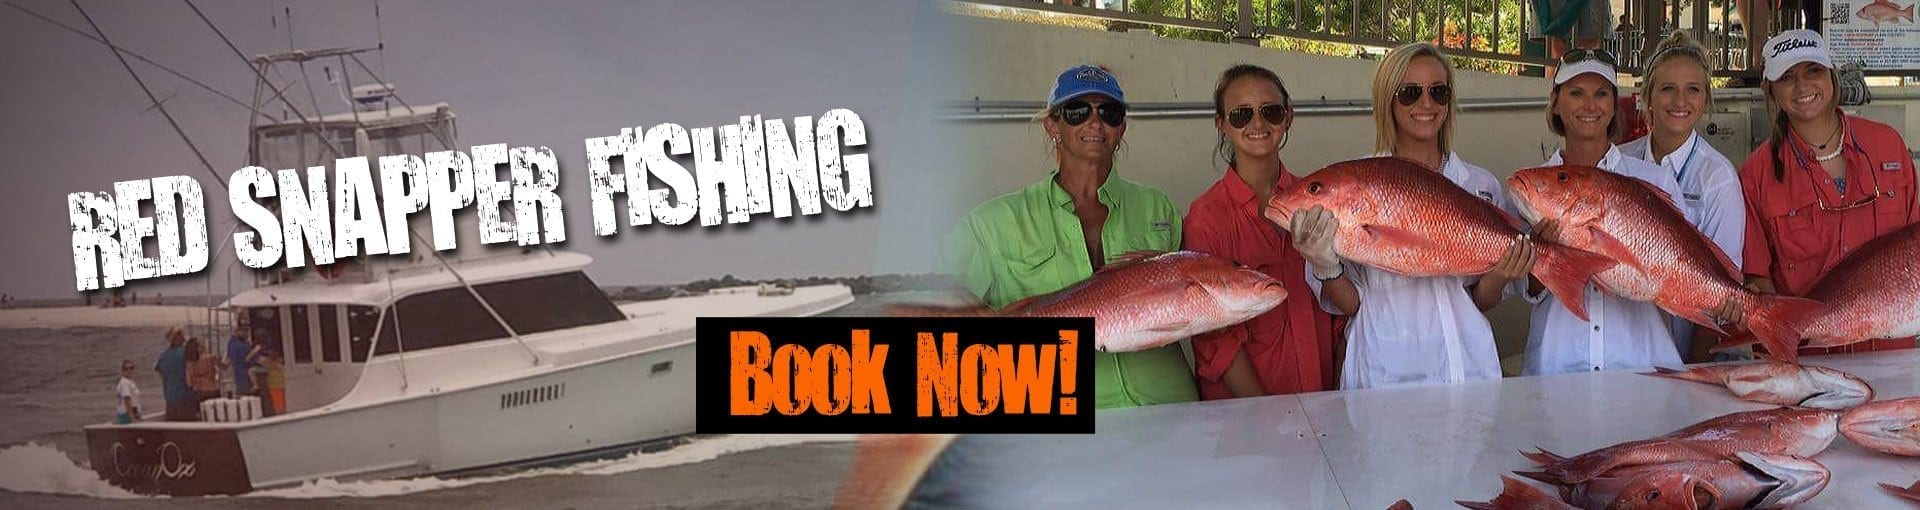 red snapper fishing in alabama